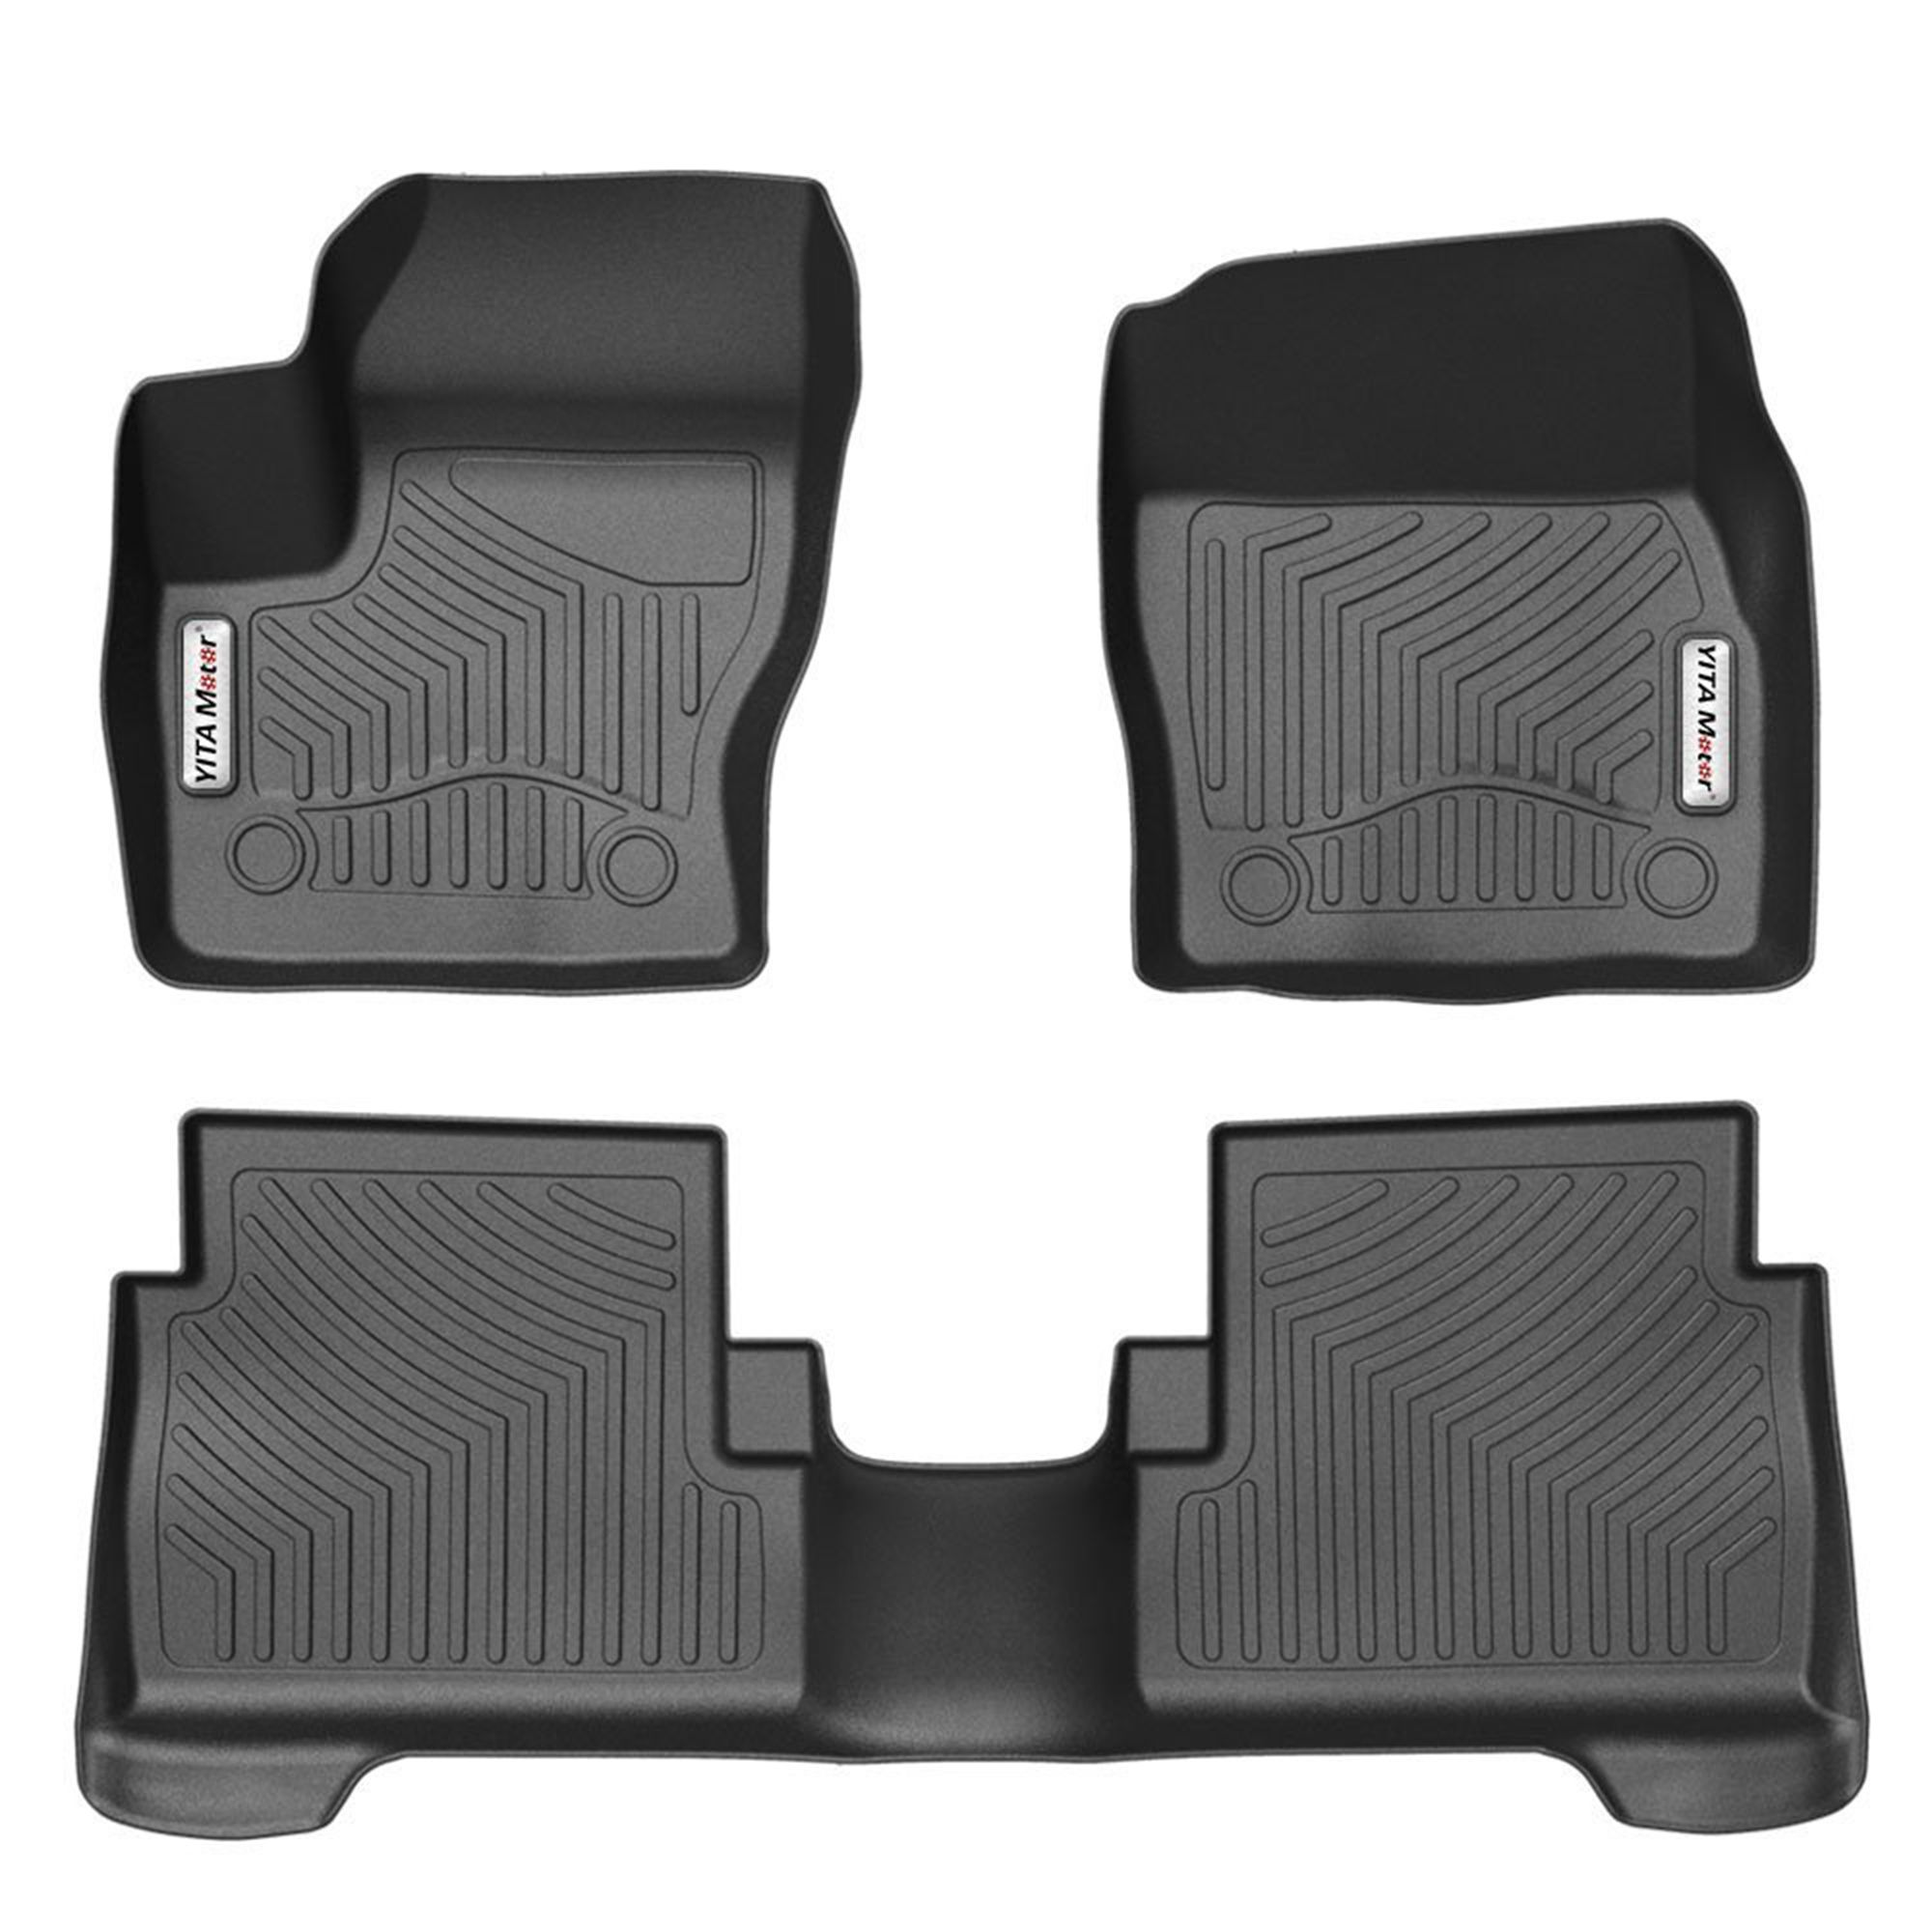 Awesome Personalized Rubber Car Floor Mats And View In 2020